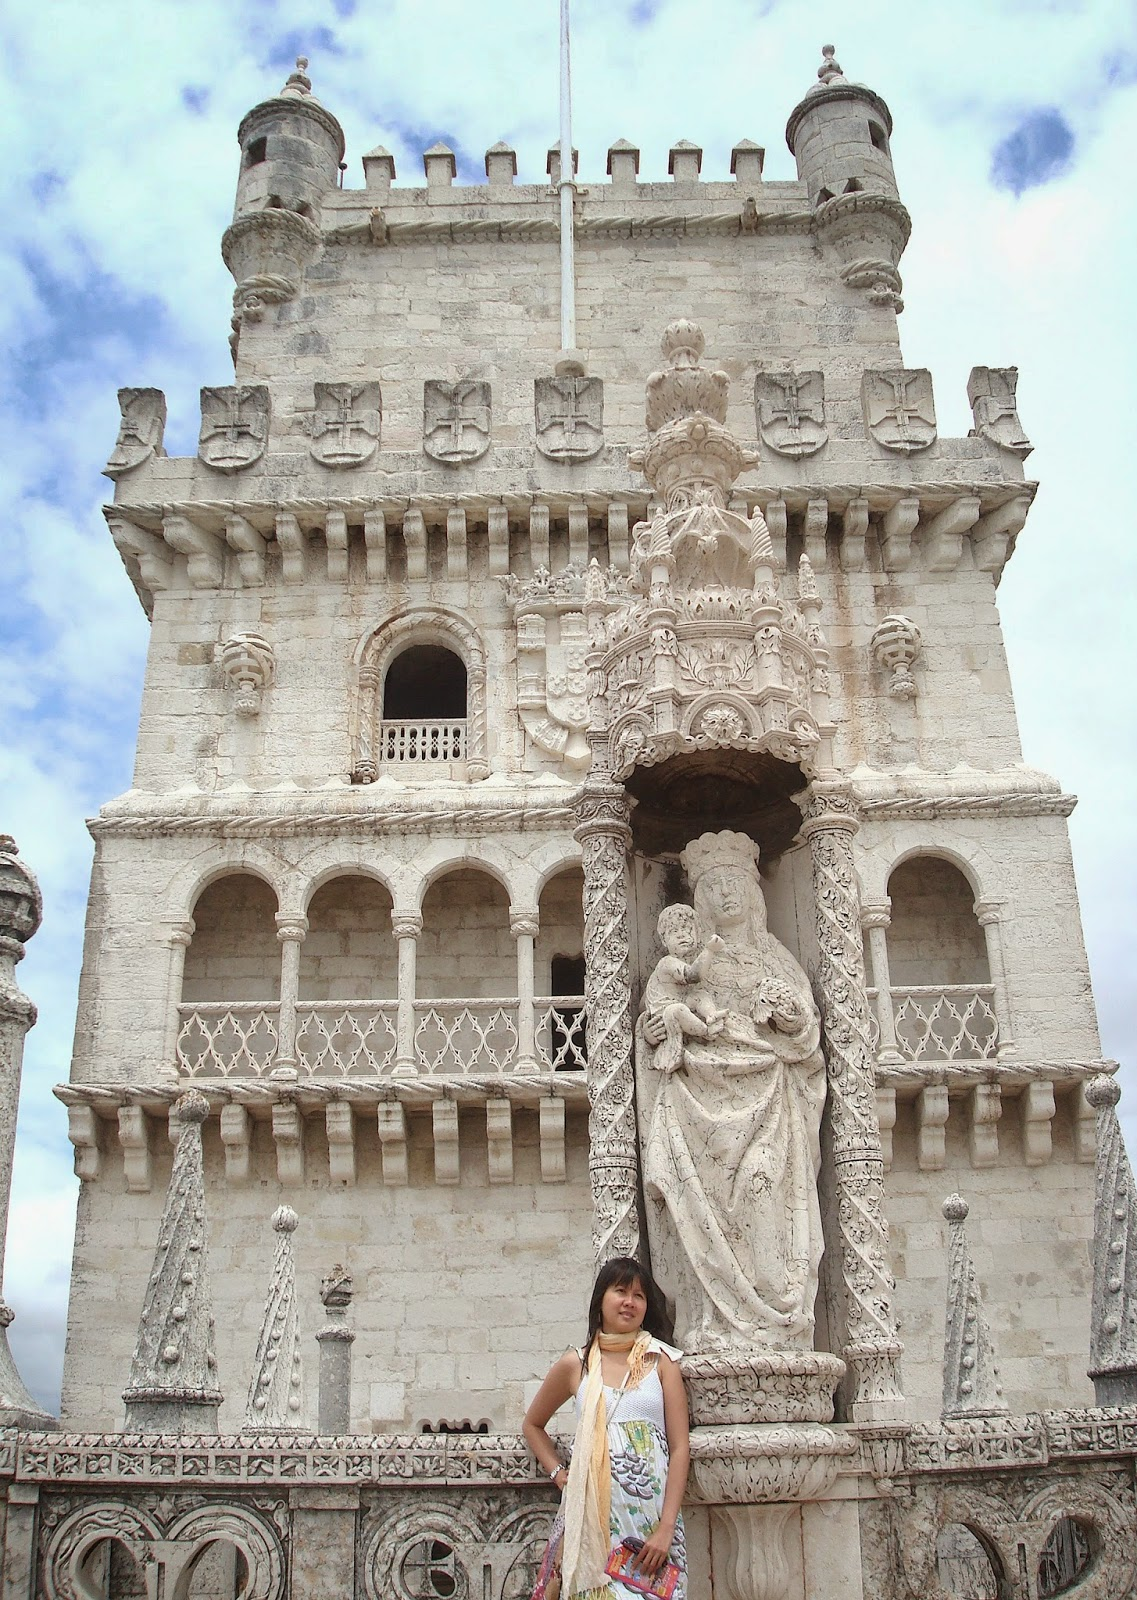 Statue of St. Mary and Child, Belem Tower, Lisbon